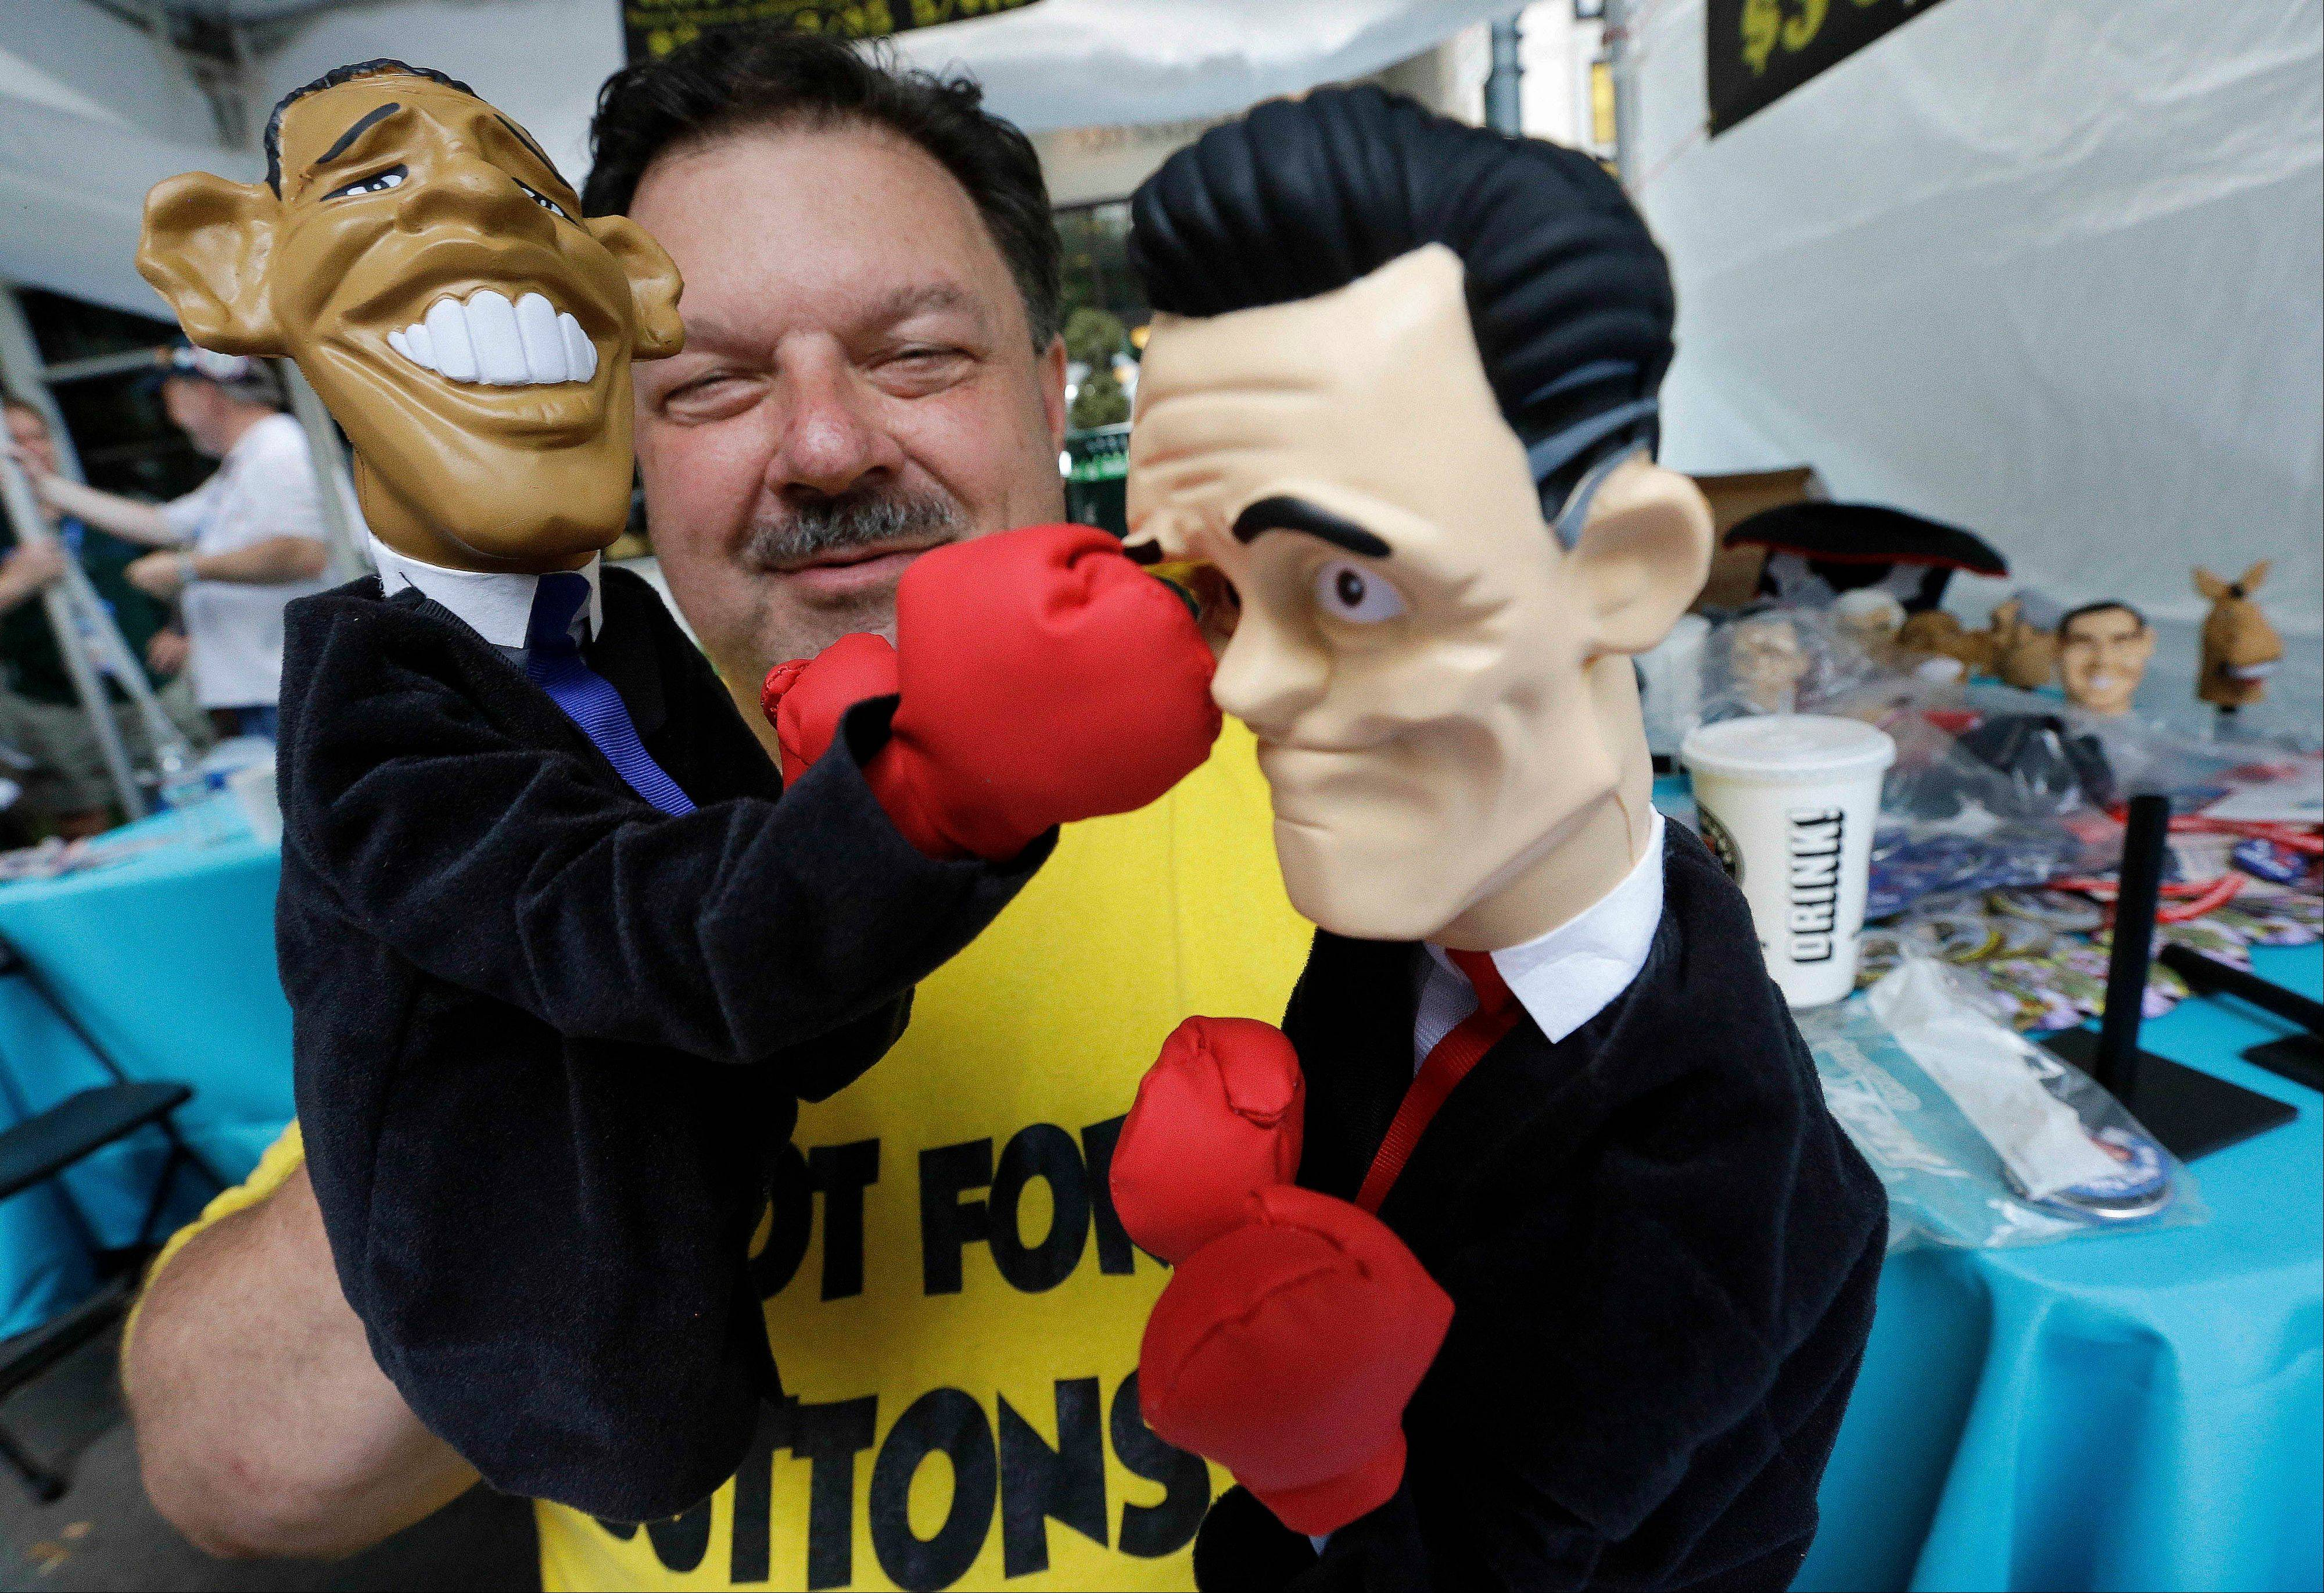 Street vendor Mark Evans shows off his hand puppets in Charlotte, N.C., before the Democratic National Convention.